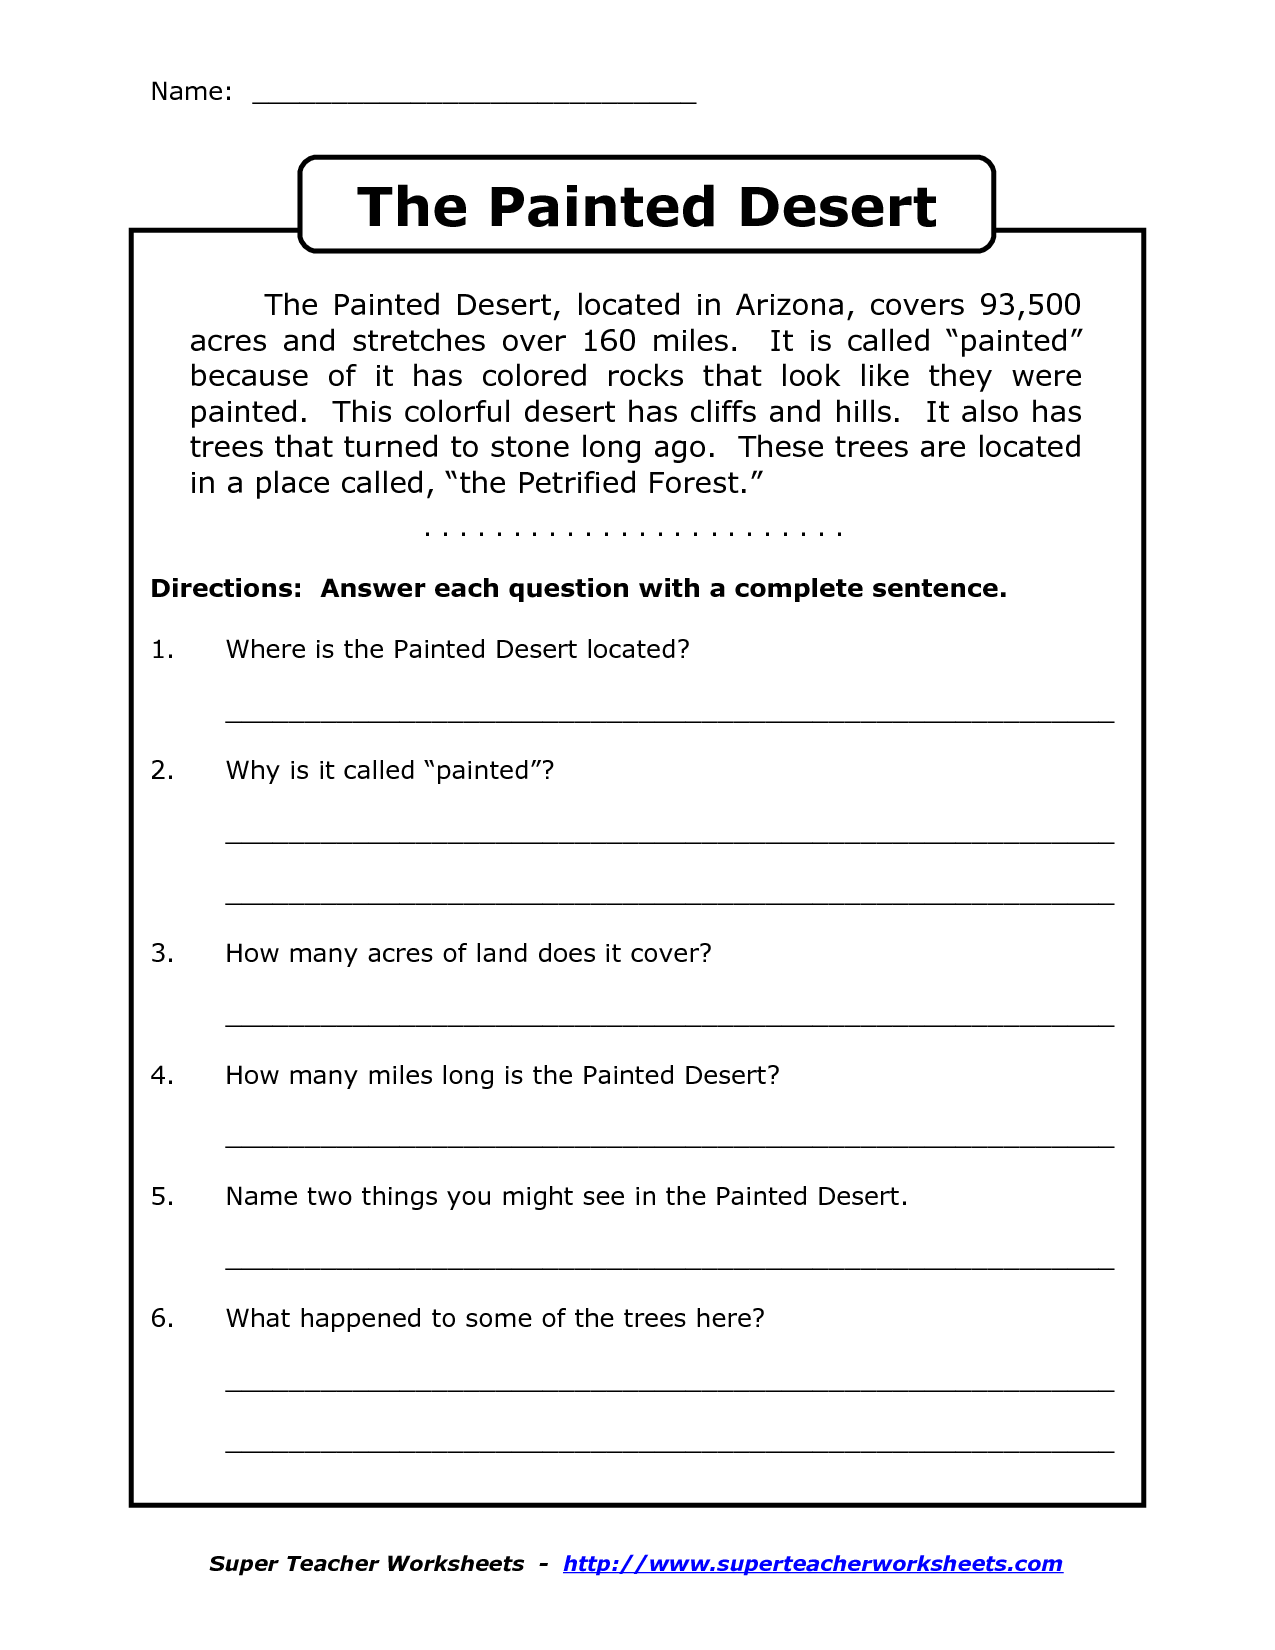 Fourth grade reading worksheets free